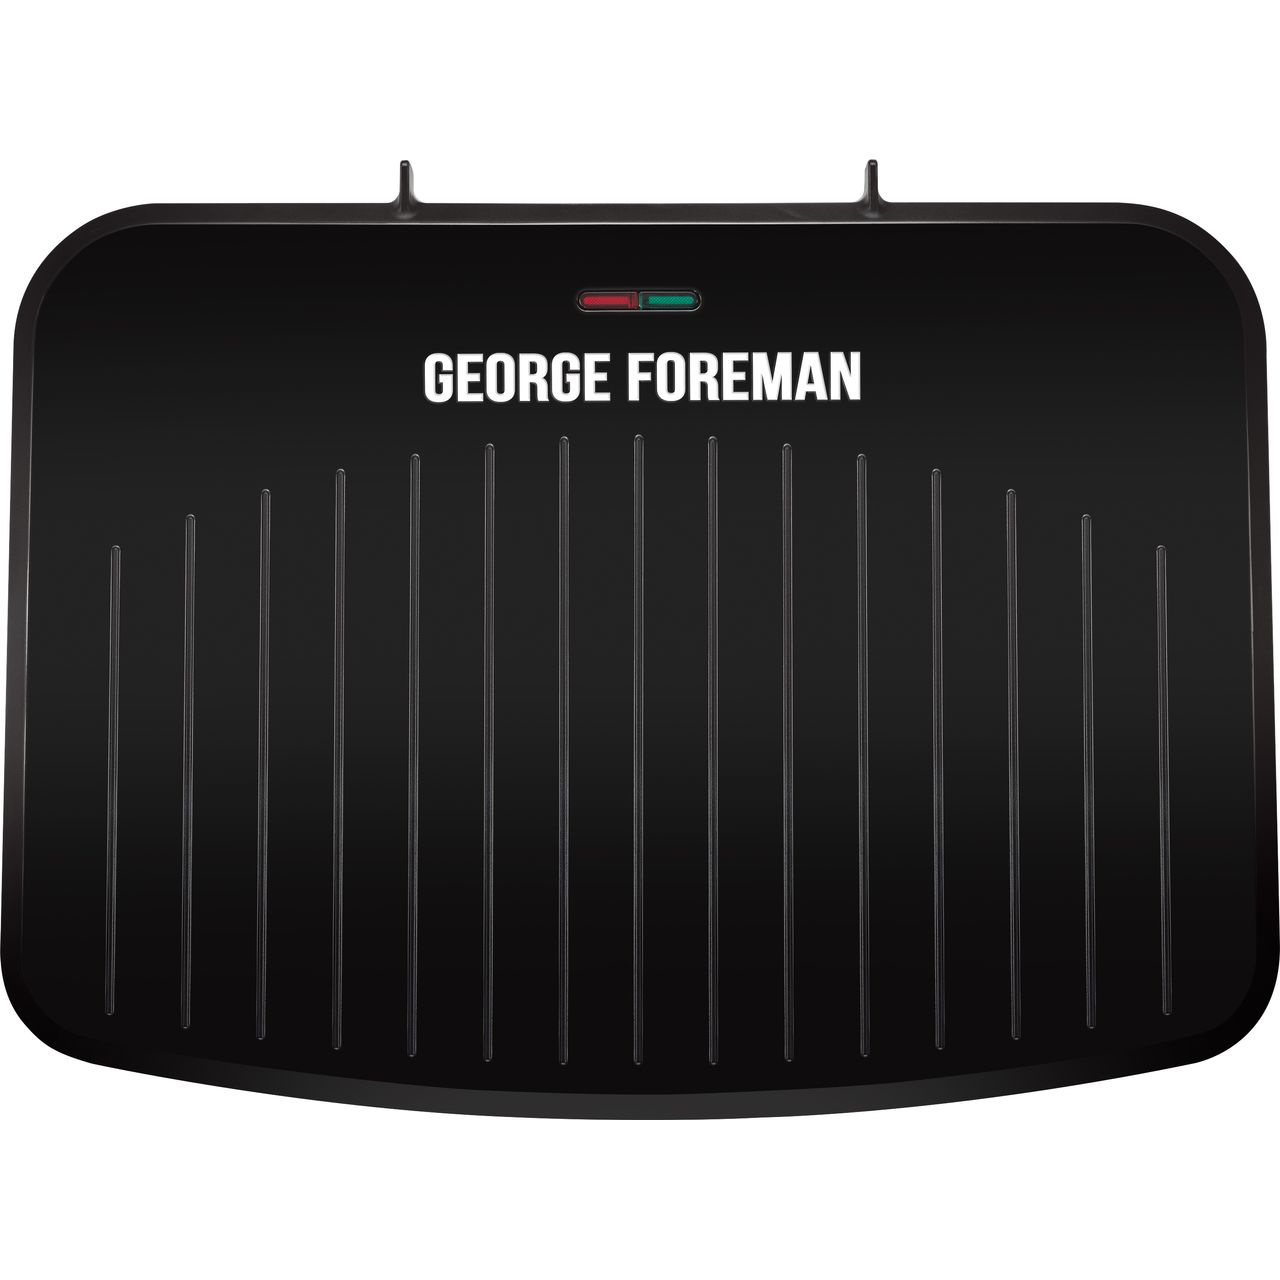 George Foreman Large Fit Health Grill - Black | 25820